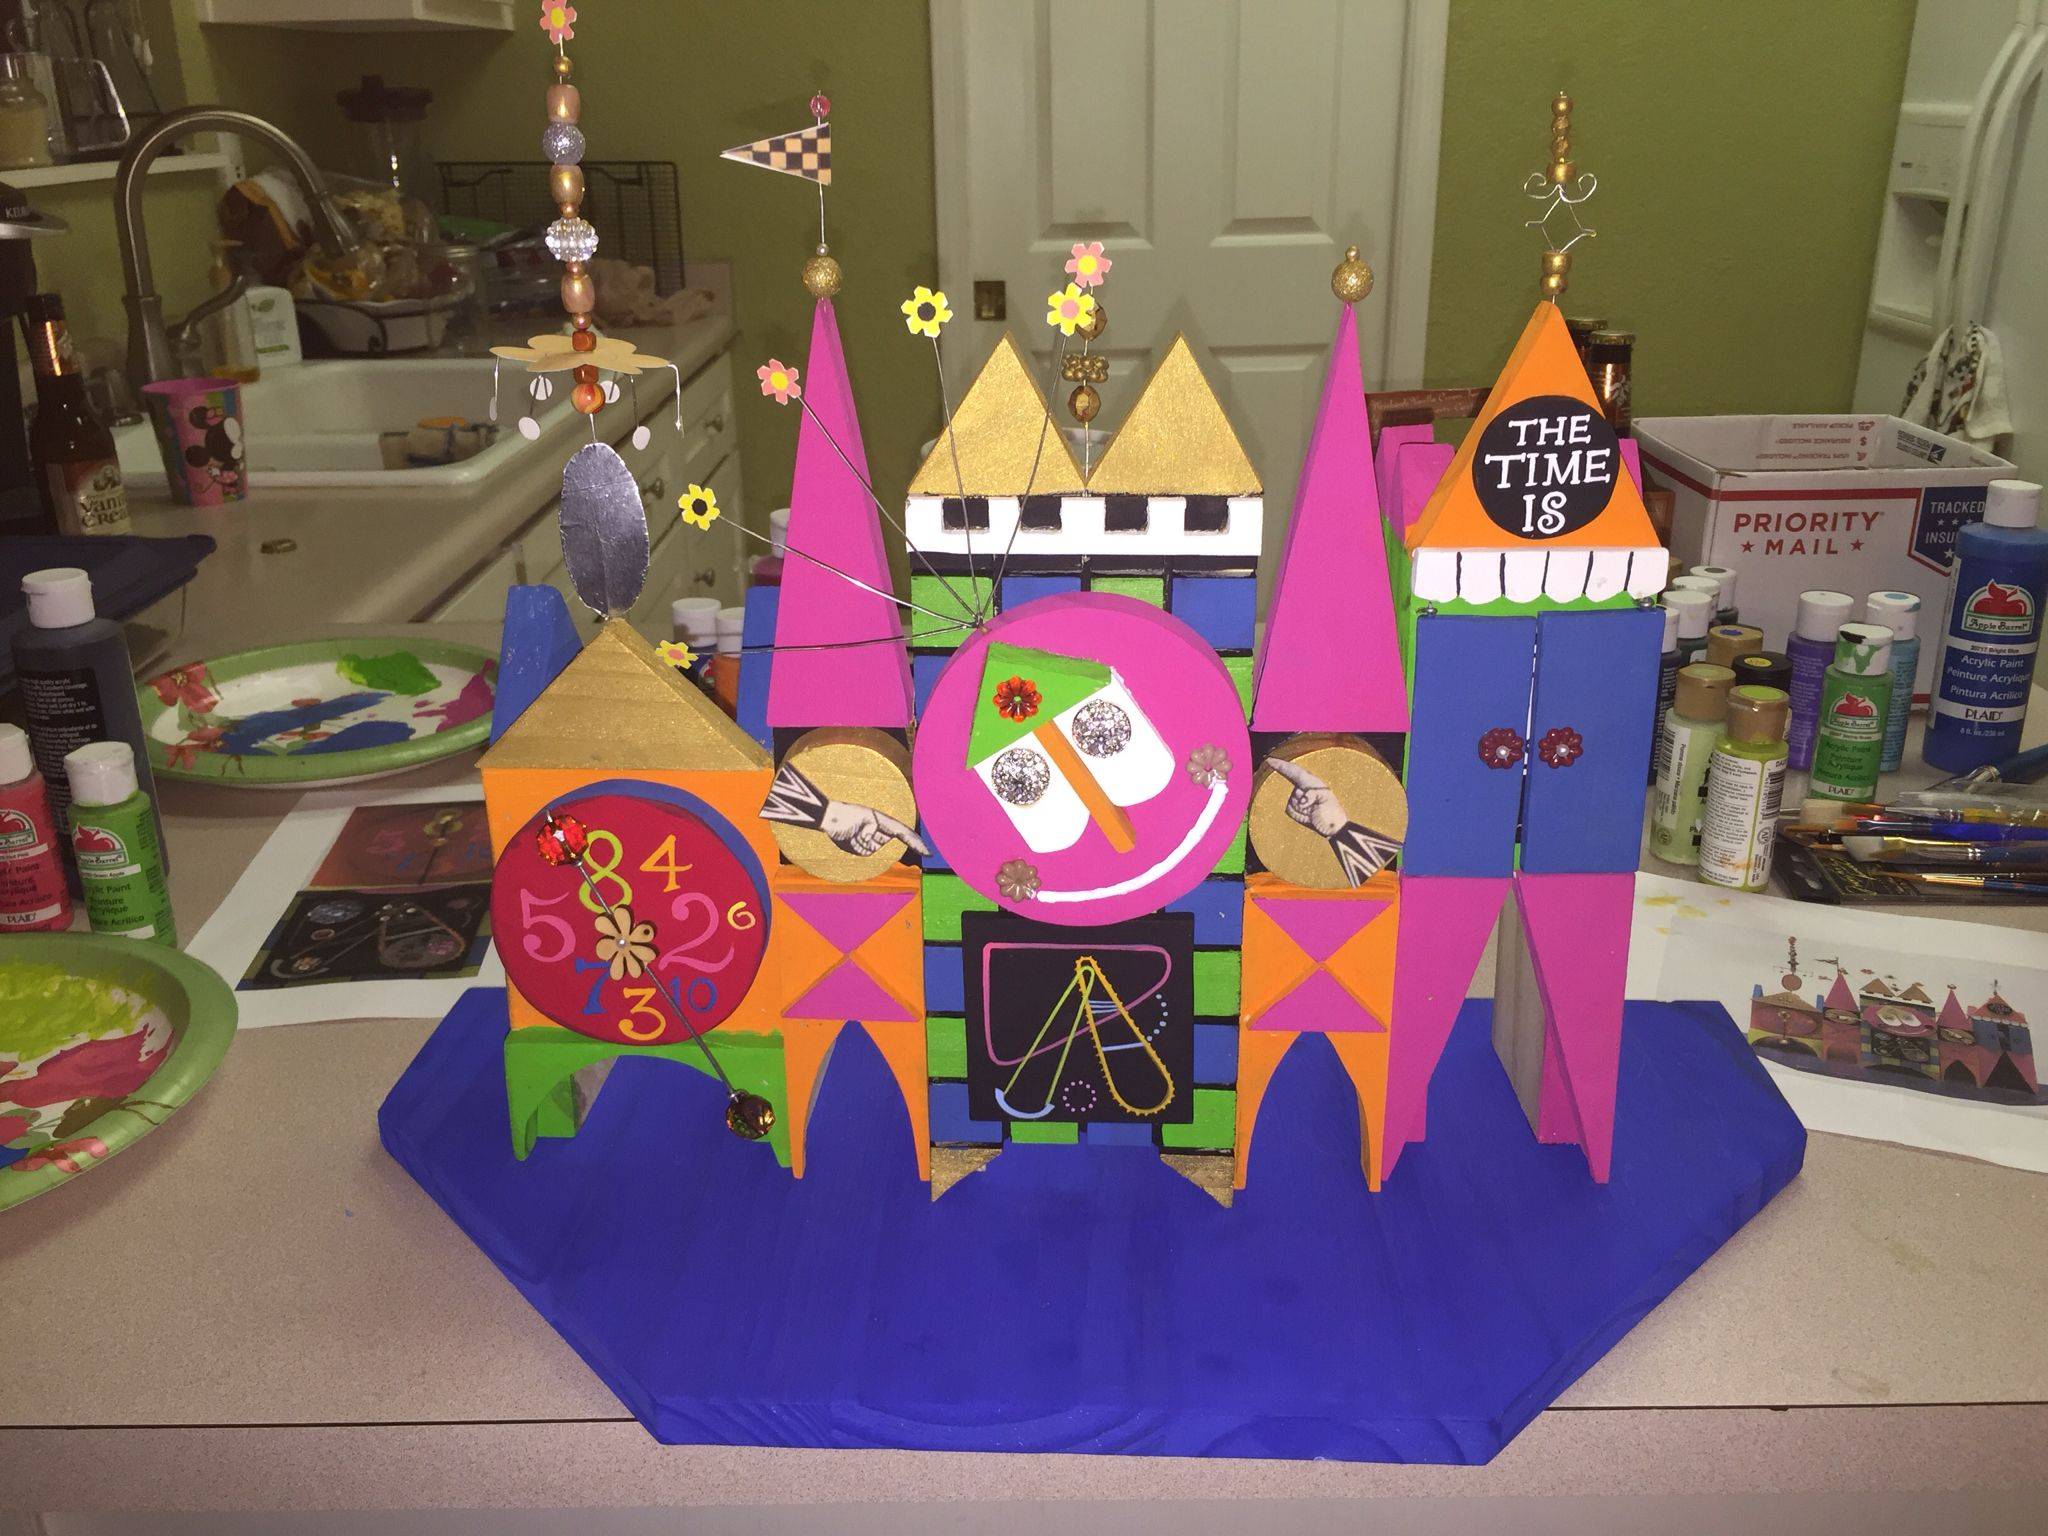 This is a replica of Rolly Crump's It's A Small World model Made by Jeff W. Boyd